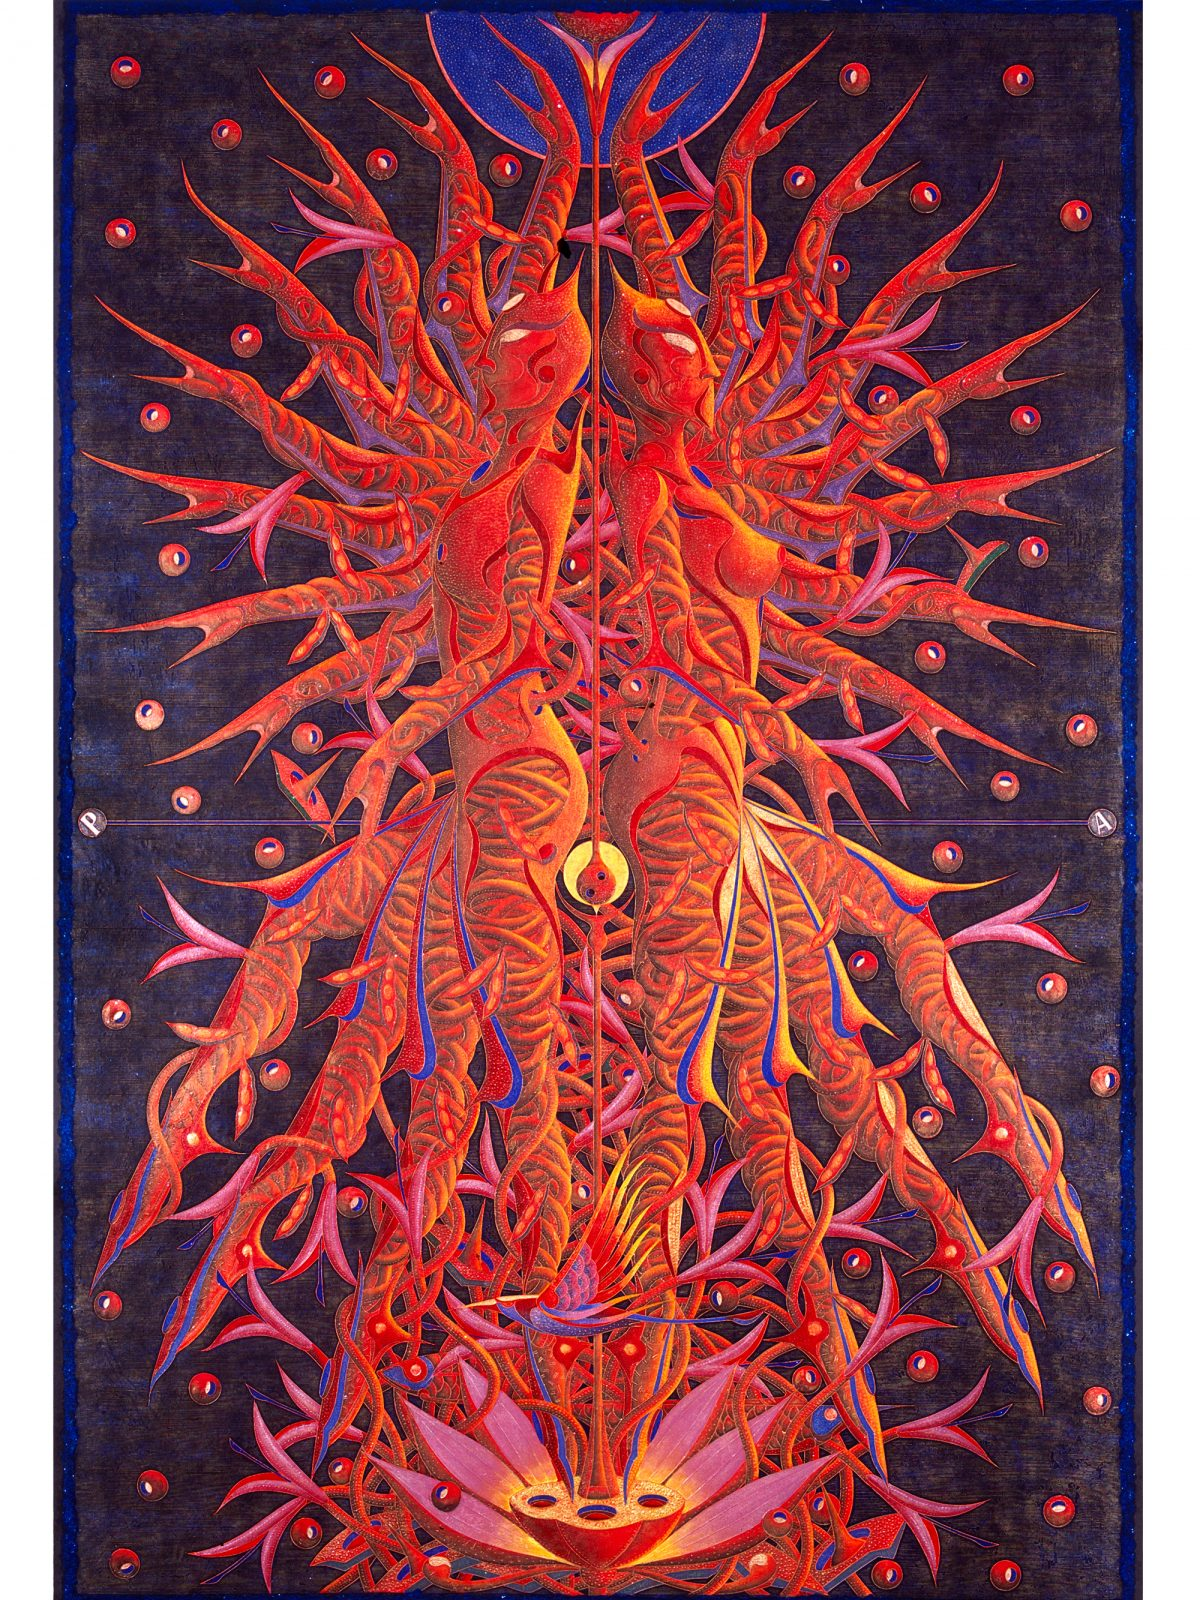 'Red-Life,Harmonious'-woodcut-with-acrylic-modelling-paster-and-minerals-on-paper,150x100cm,2005